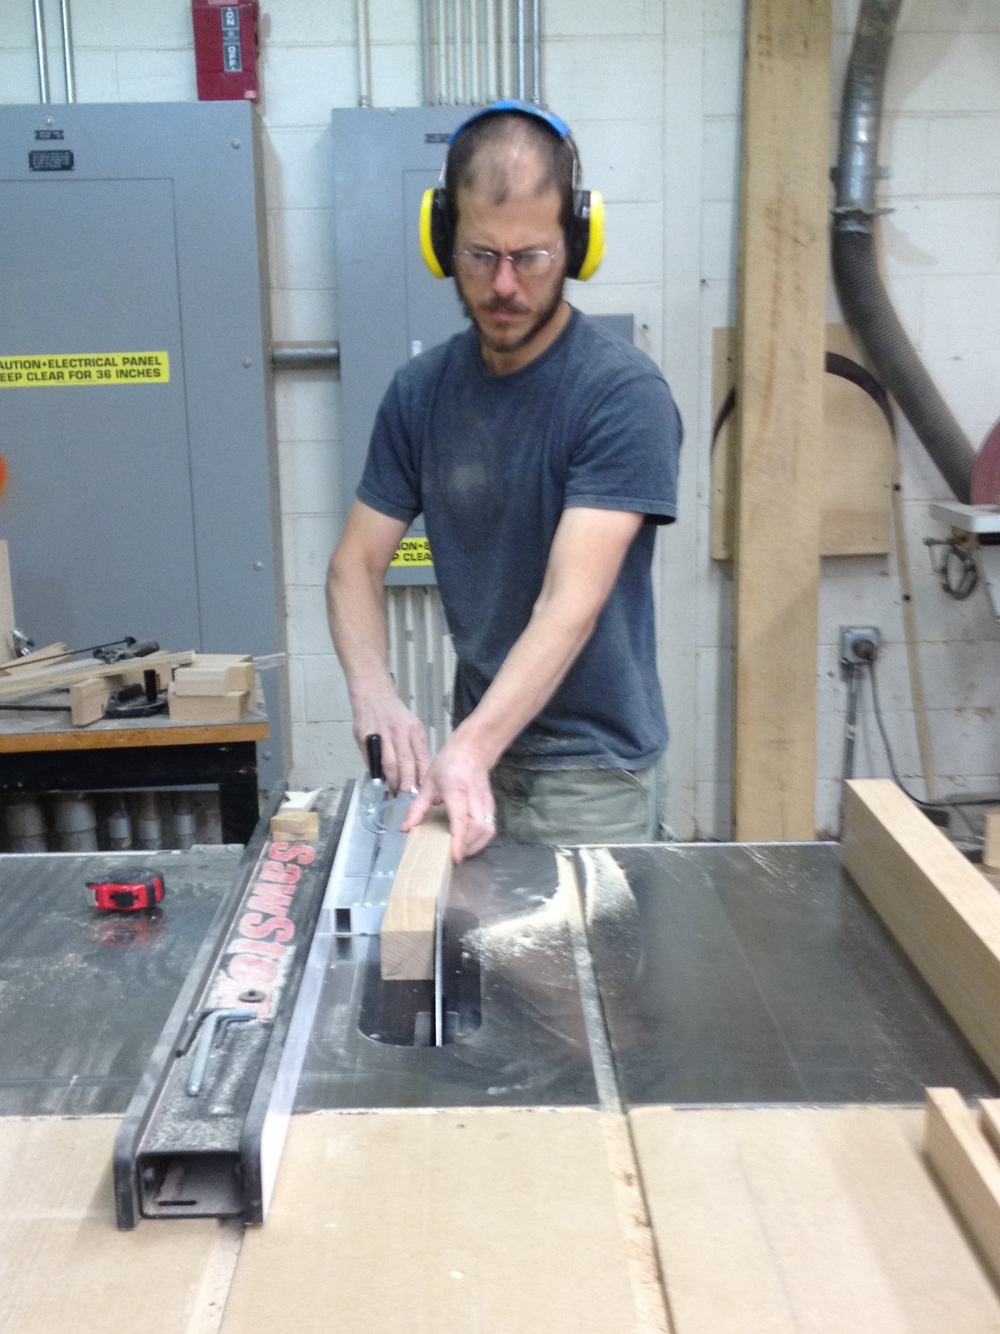 Tapering the legs on the tablesaw with an adjustable jig.